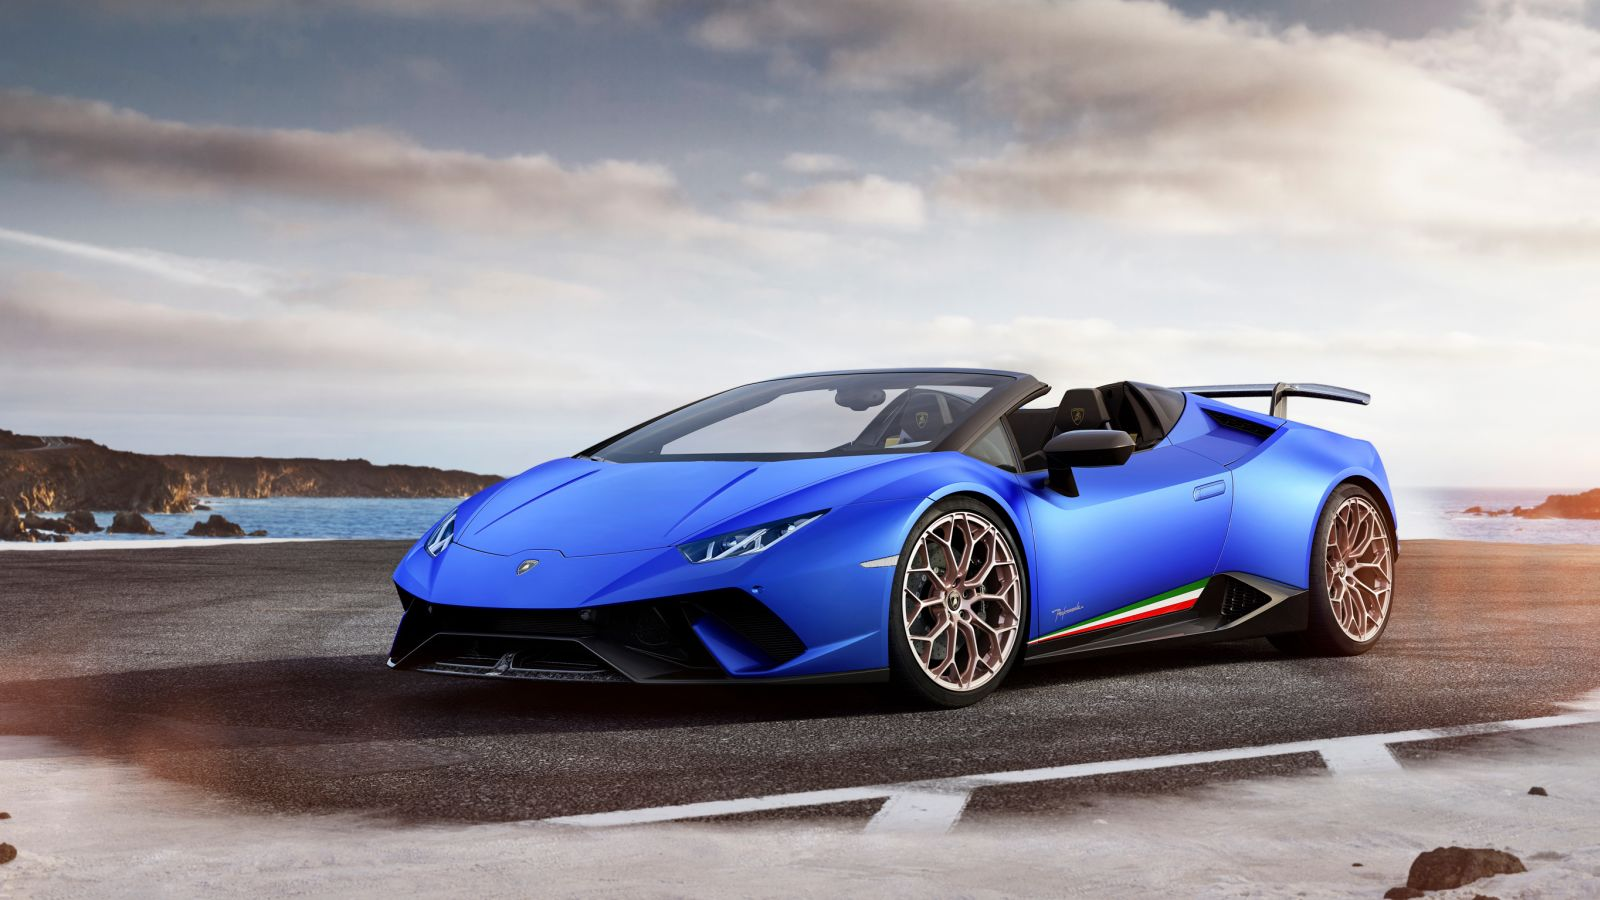 Supercar of the Week: Lamborghini Huracán Performante